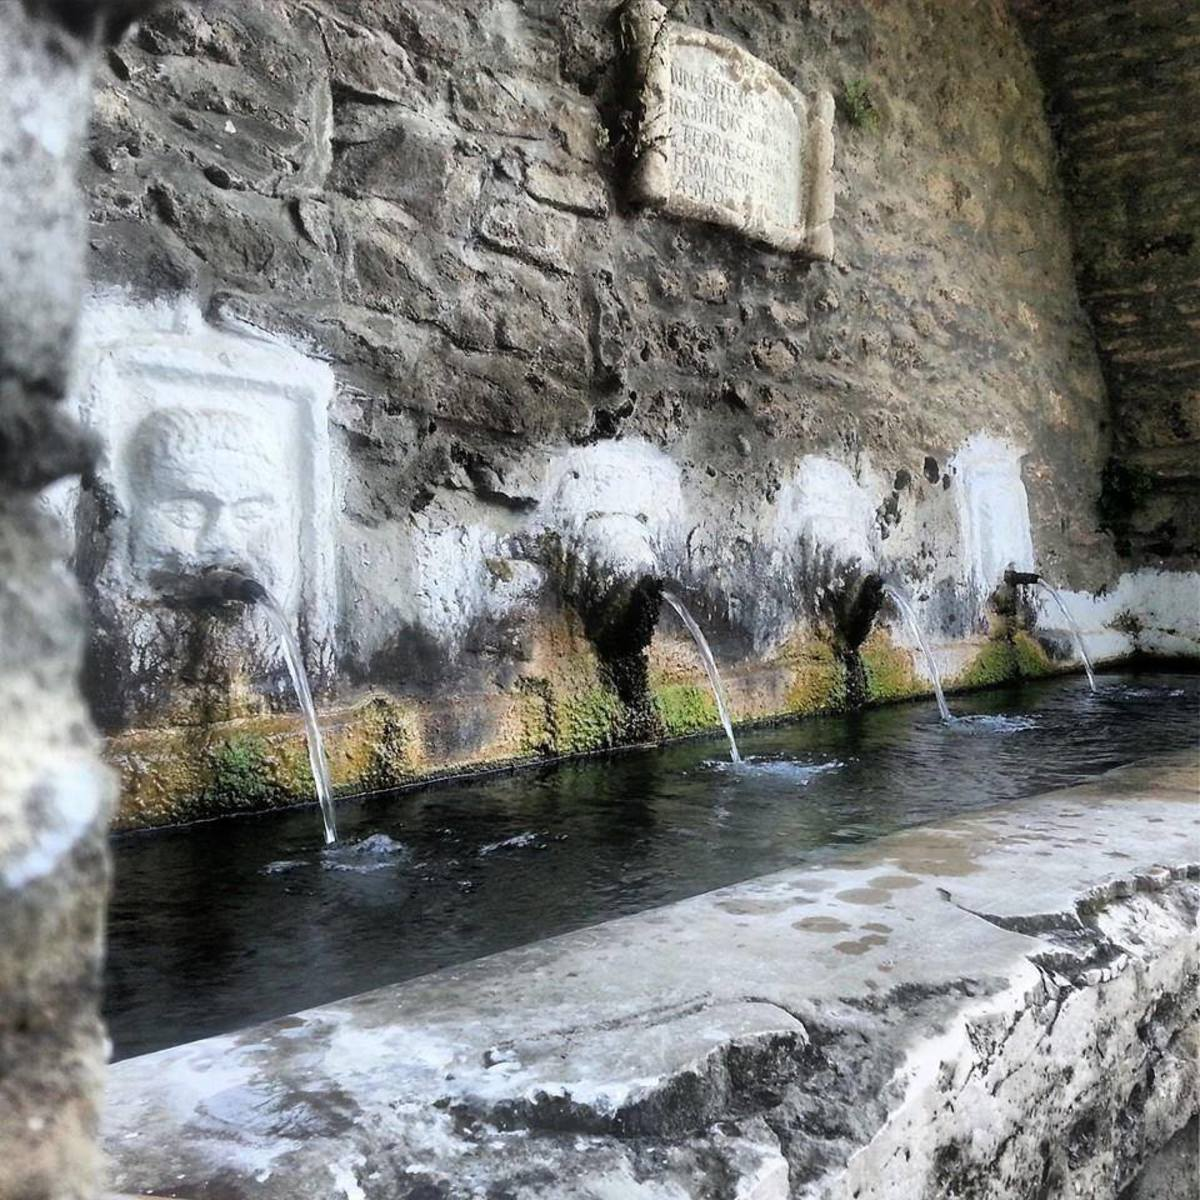 One of the two troughs with four spouts at the old fountain of Capo Daqua. For anyone interested in seeing how people used to build with rubble stones in the past, here is a good example, of course you can also see some repairs done lately.